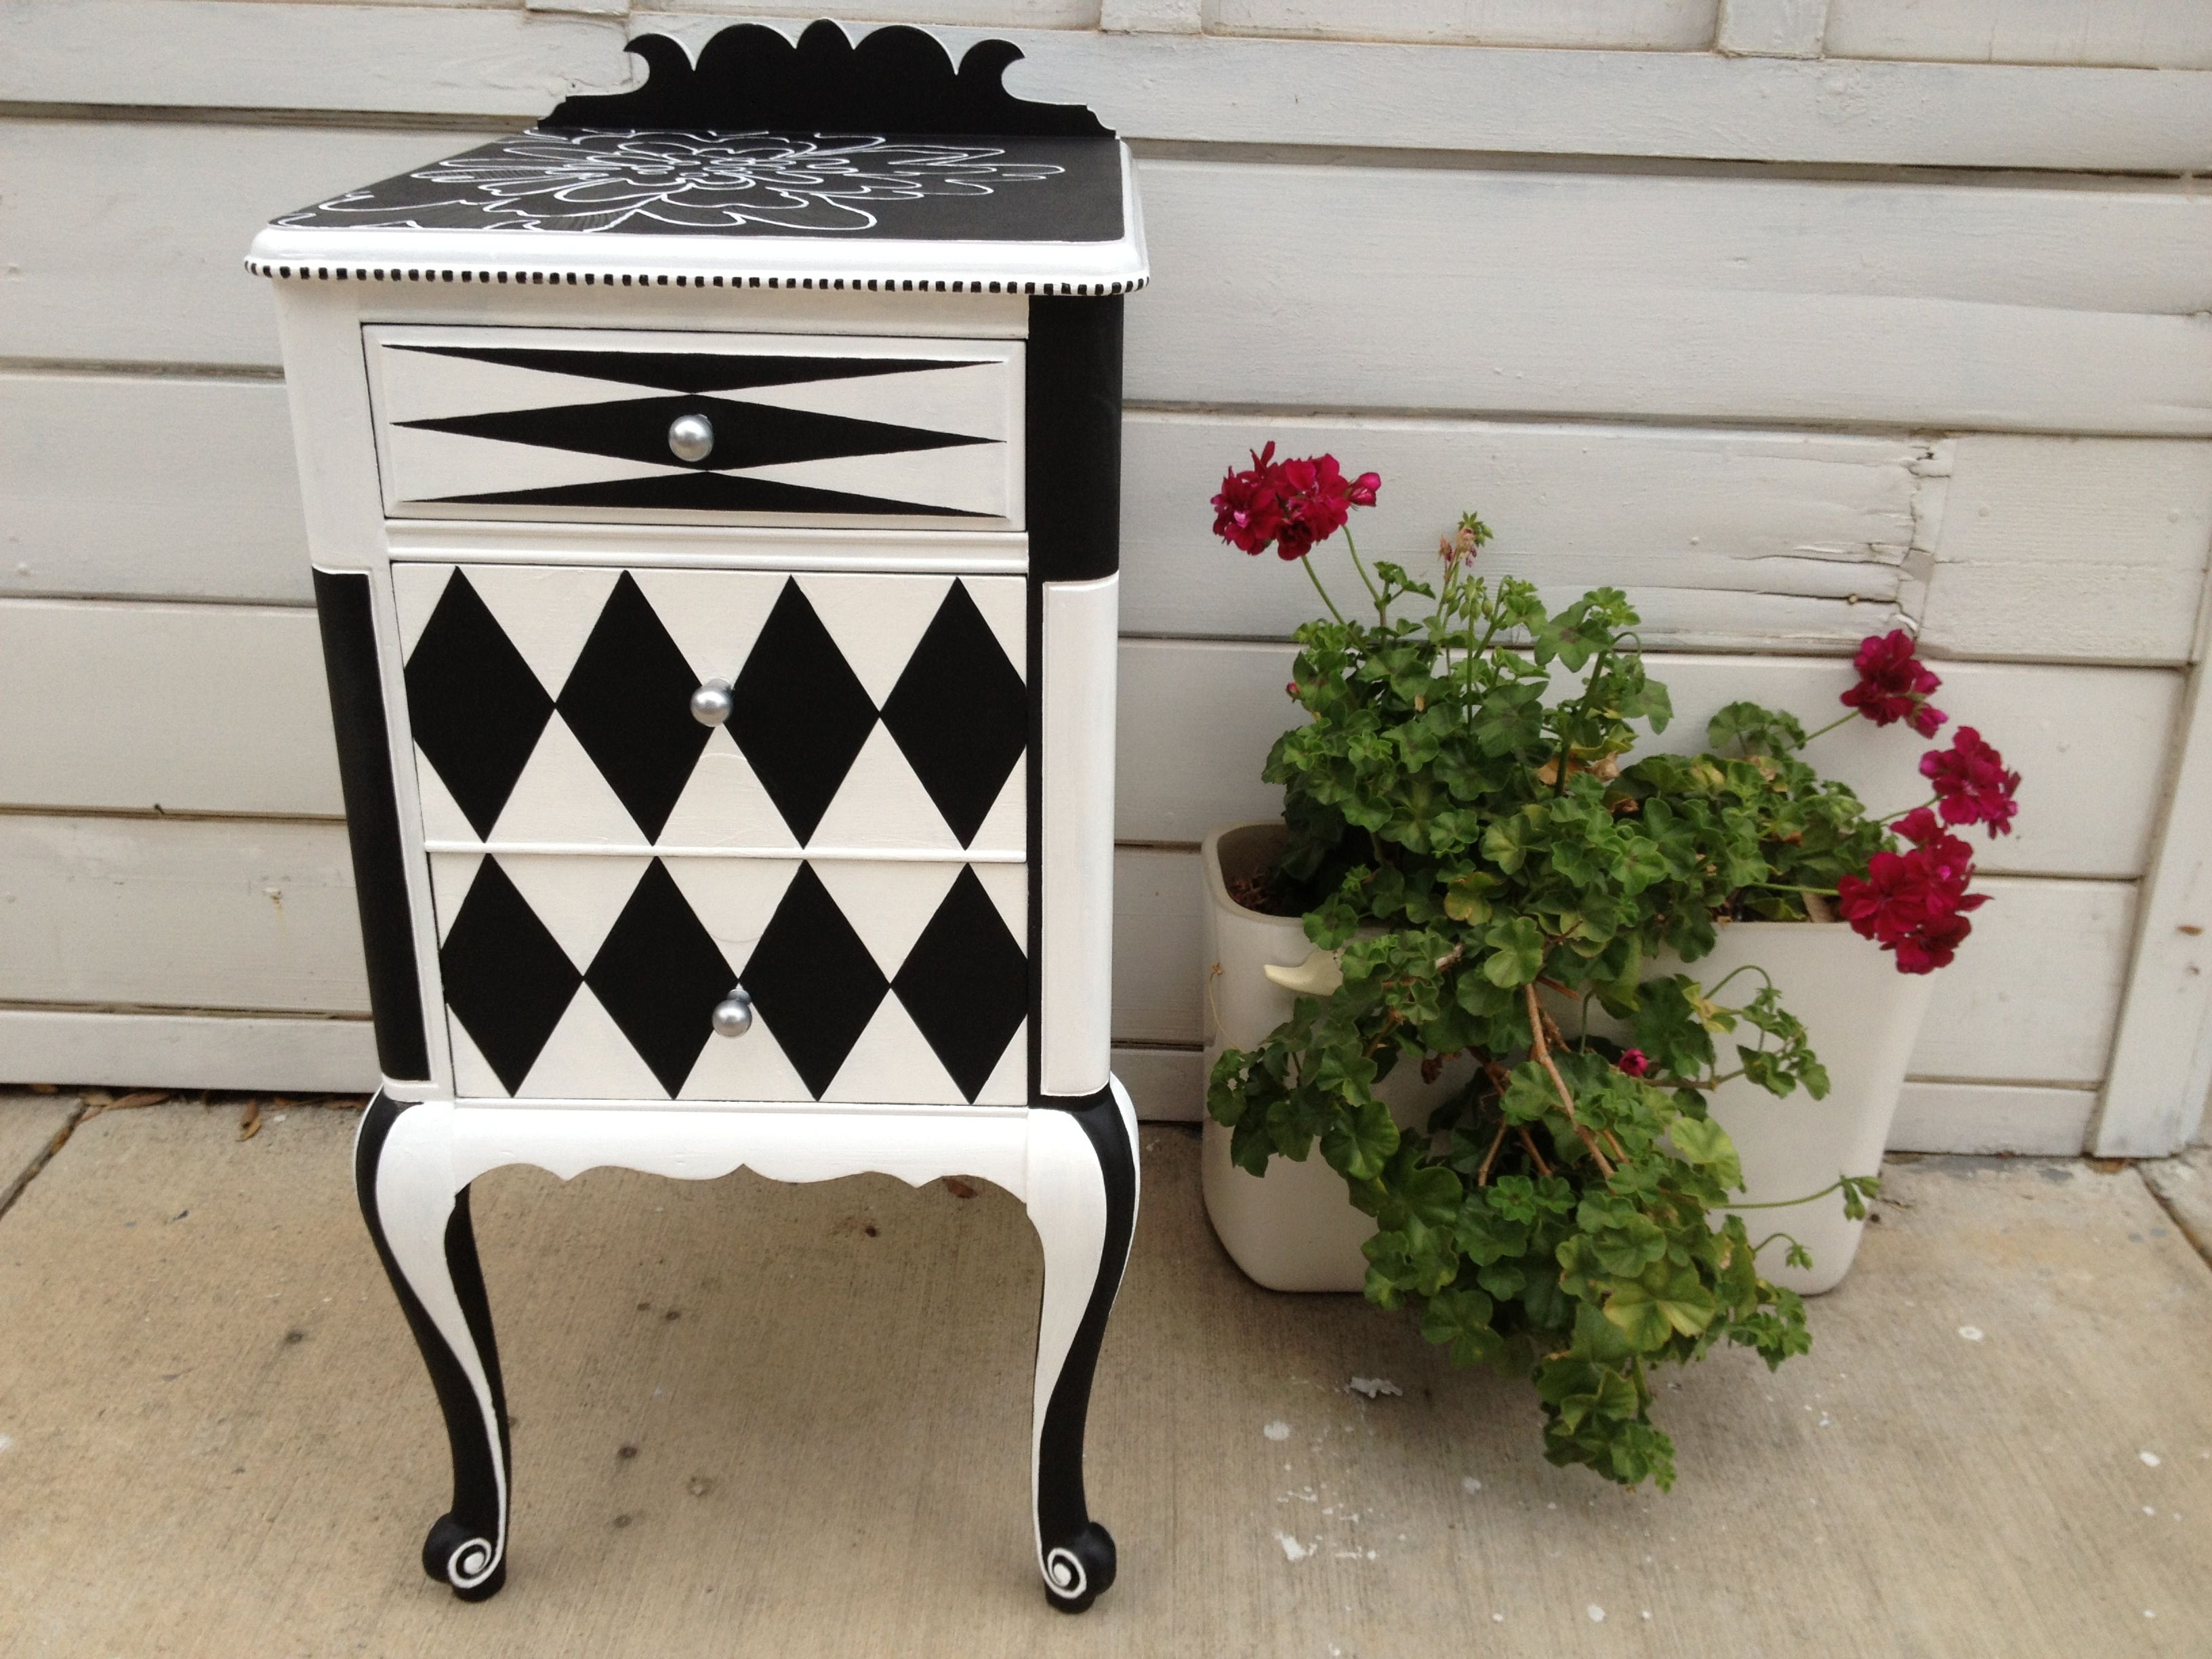 2nd Chance Designs Whimsical Furniture Whimsical Painted Furniture Funky Painted Furniture